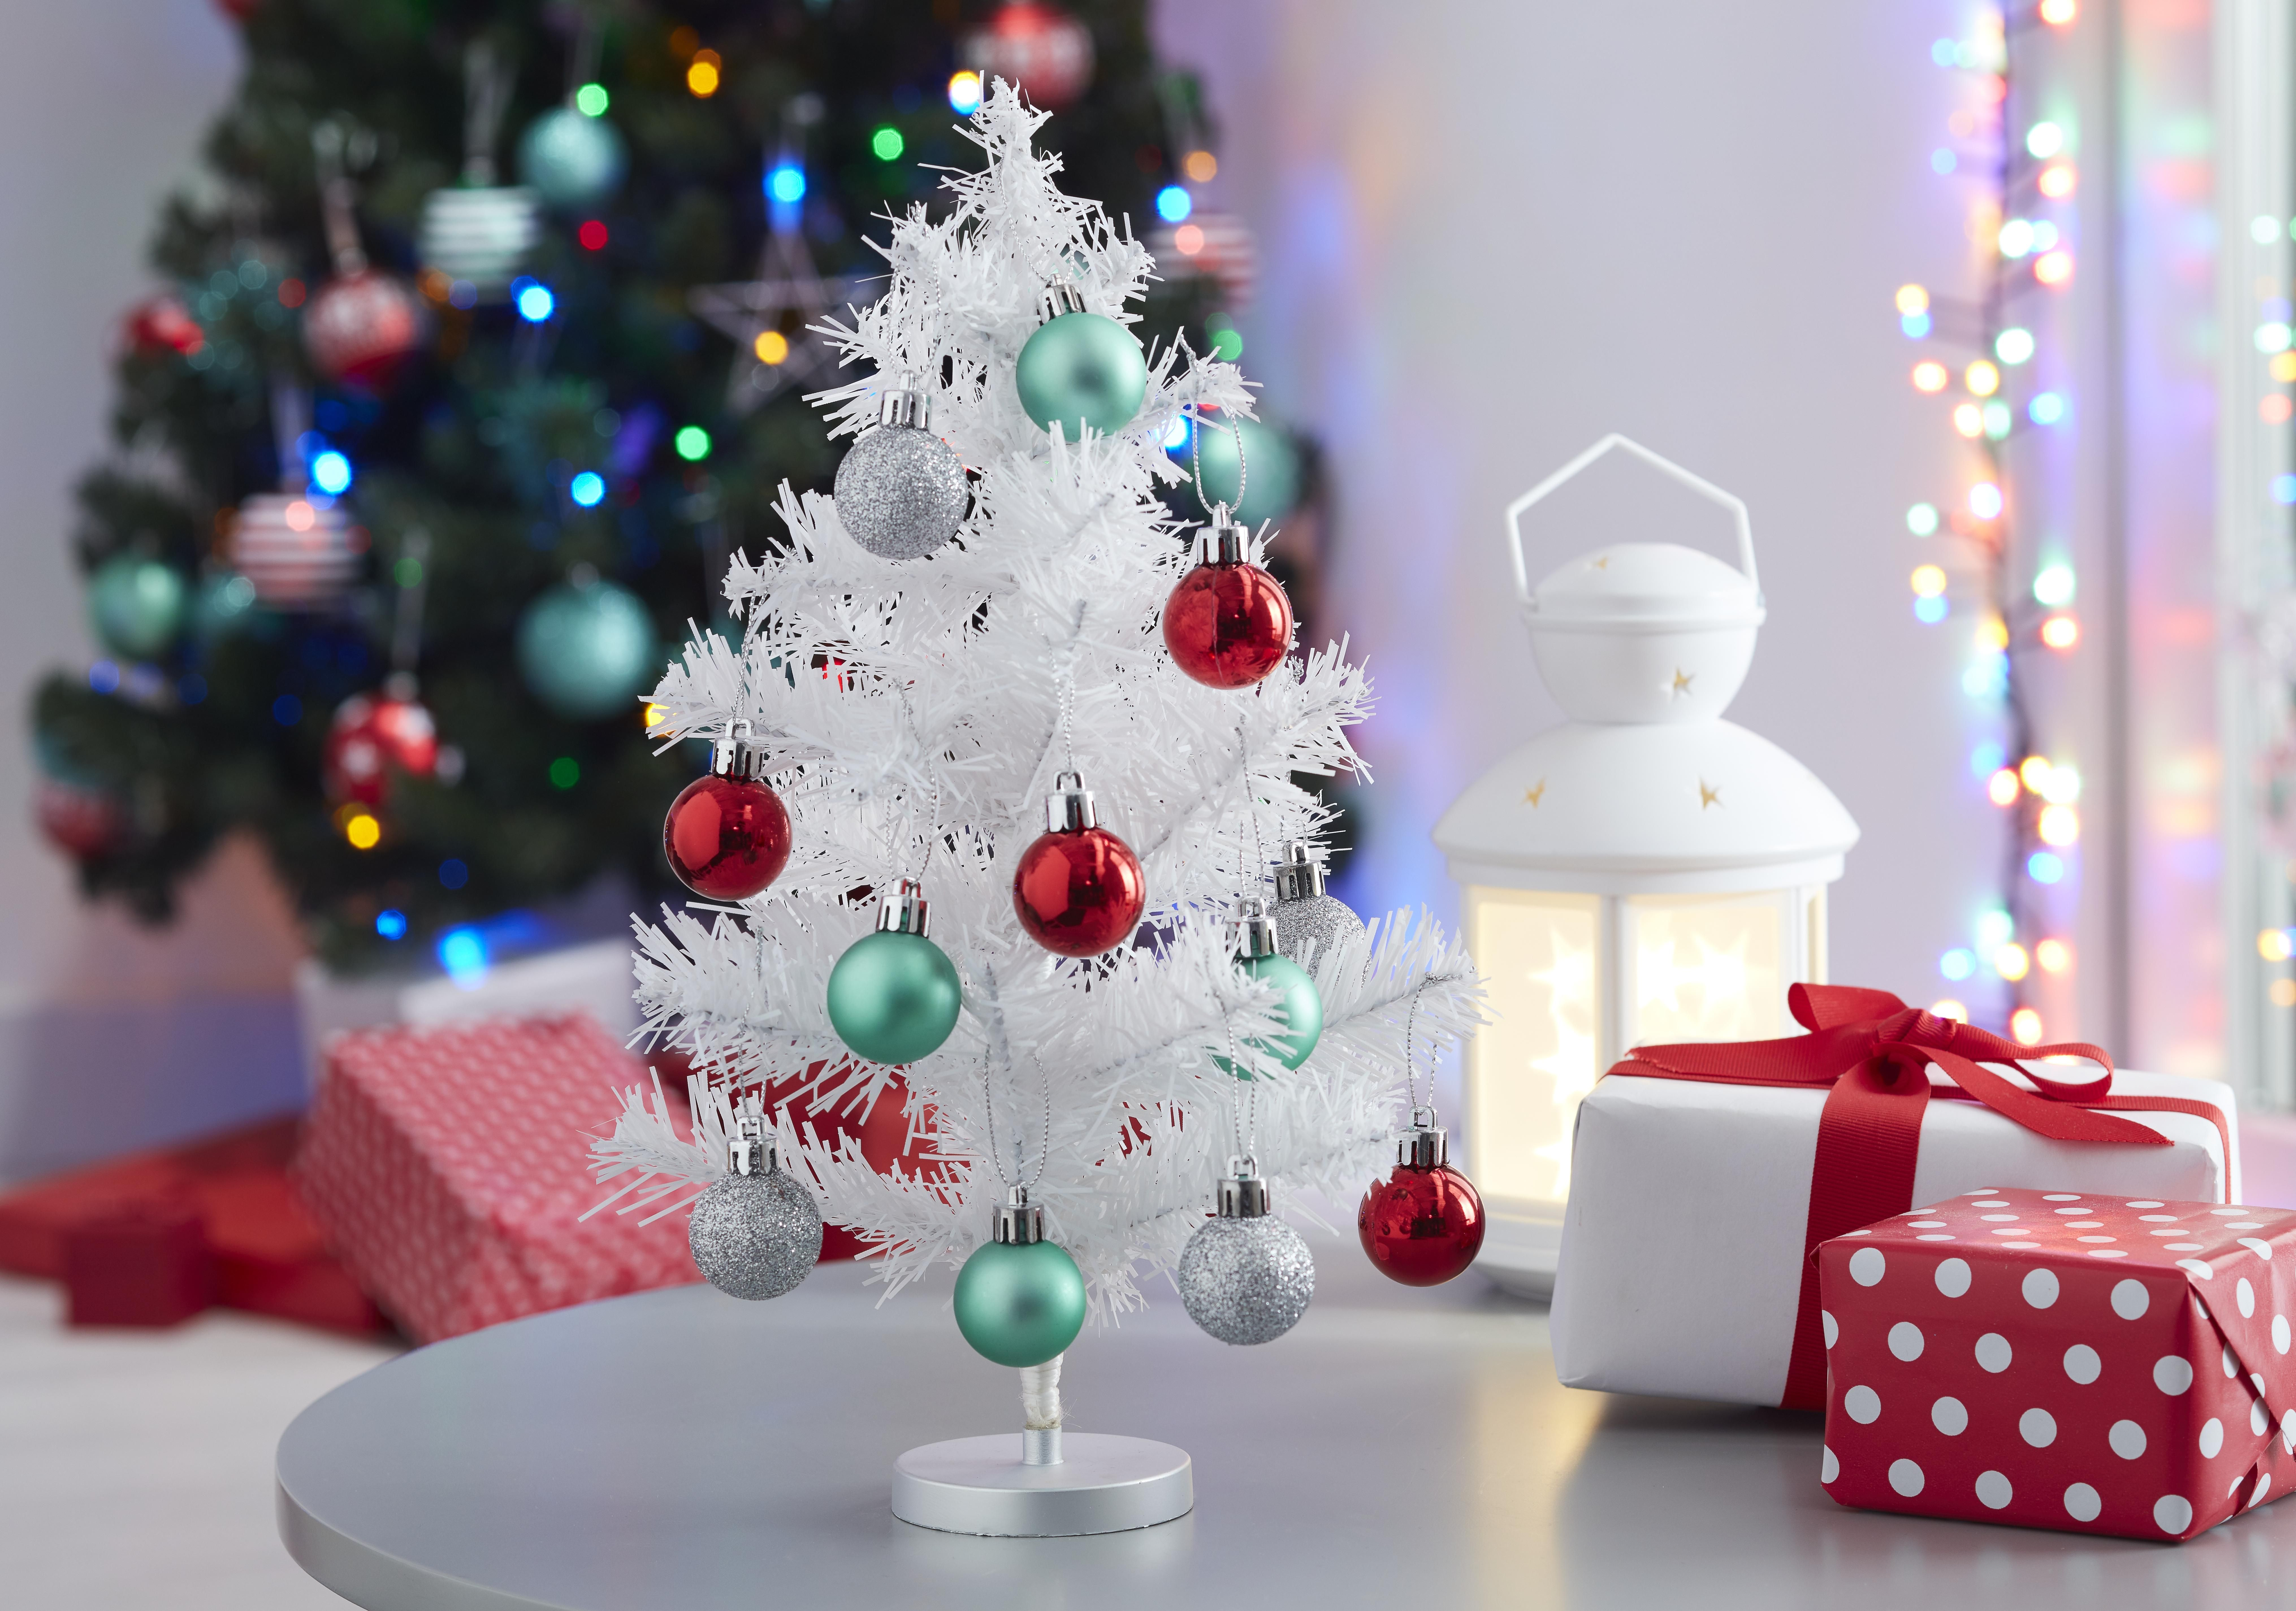 You can add some Christmas magic anywhere you like with a